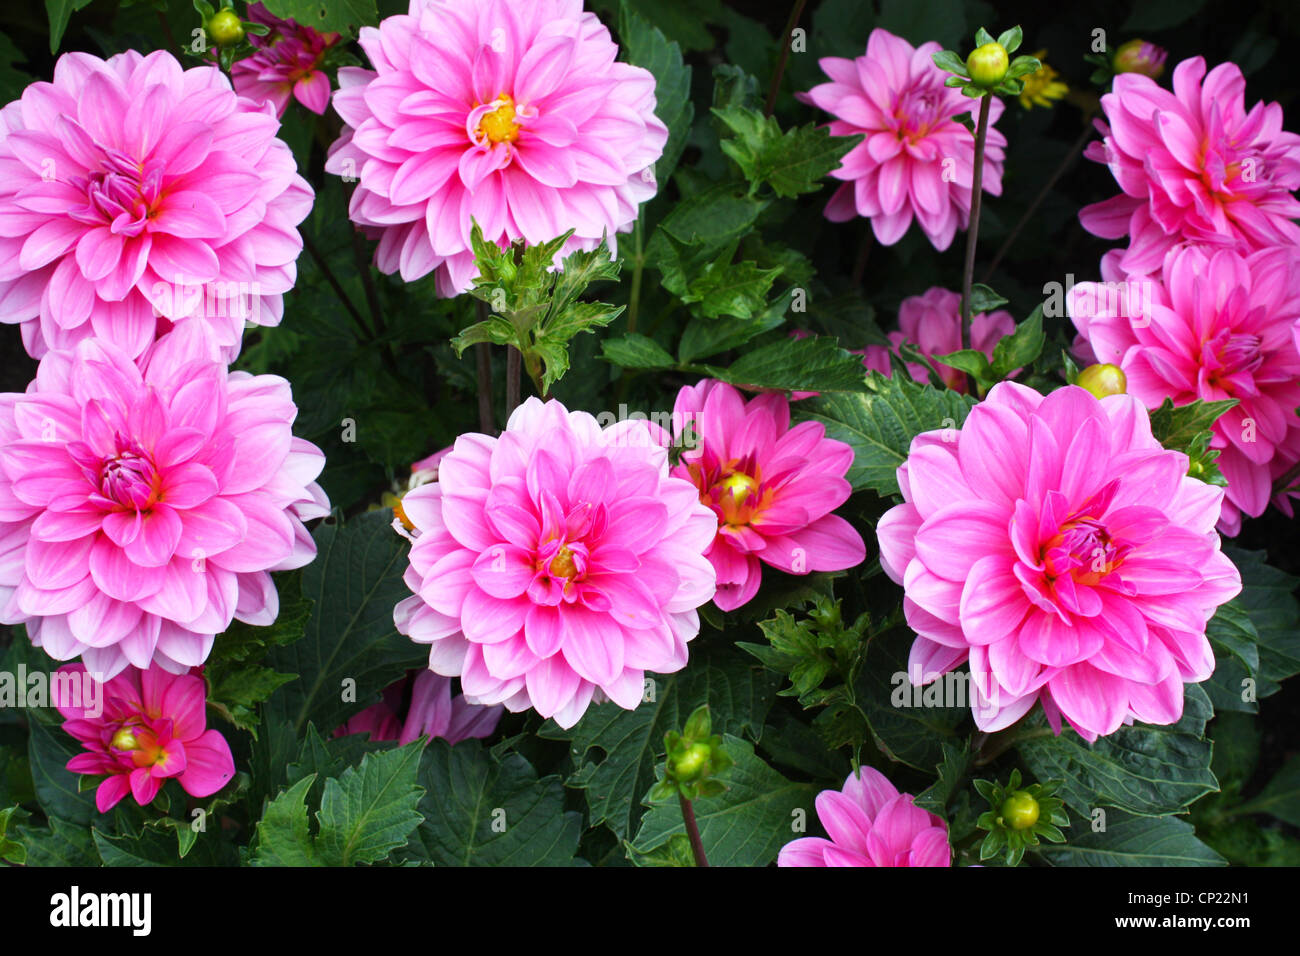 Dahlia leaves stock photos dahlia leaves stock images alamy pink dahlia flowers with green leaves in a garden stock image izmirmasajfo